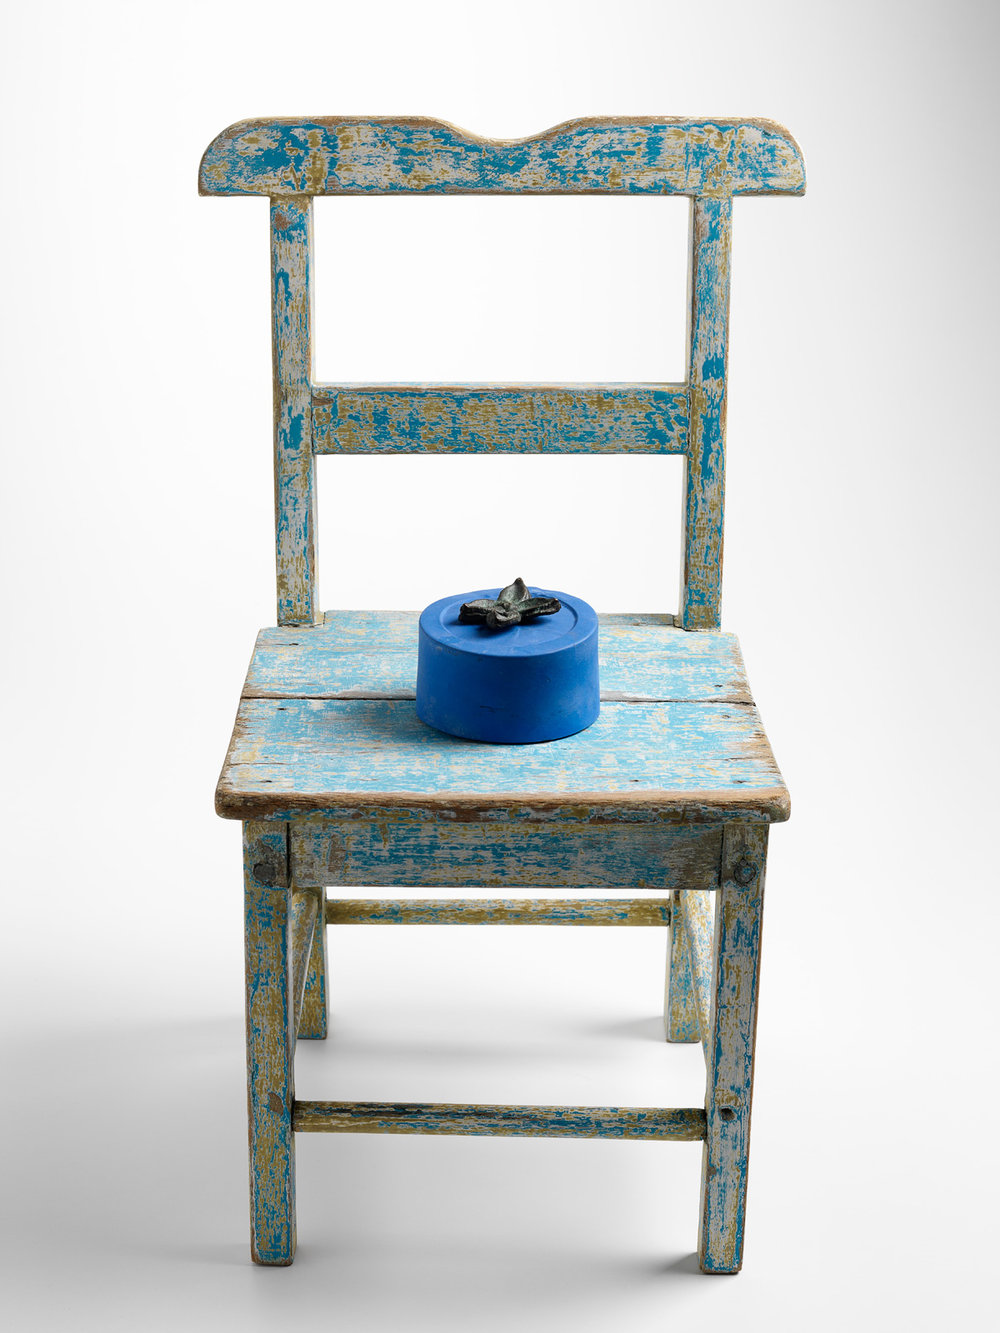 Lee Salomone,  For Yves Klein,  from the series , Works from the (found)ry, 2013-2016,  bronze, patina, chroma key blue acrylic paint, wooden chair, various paints, 55 x 27 x 28cm. Photograph by Grant Hancock.